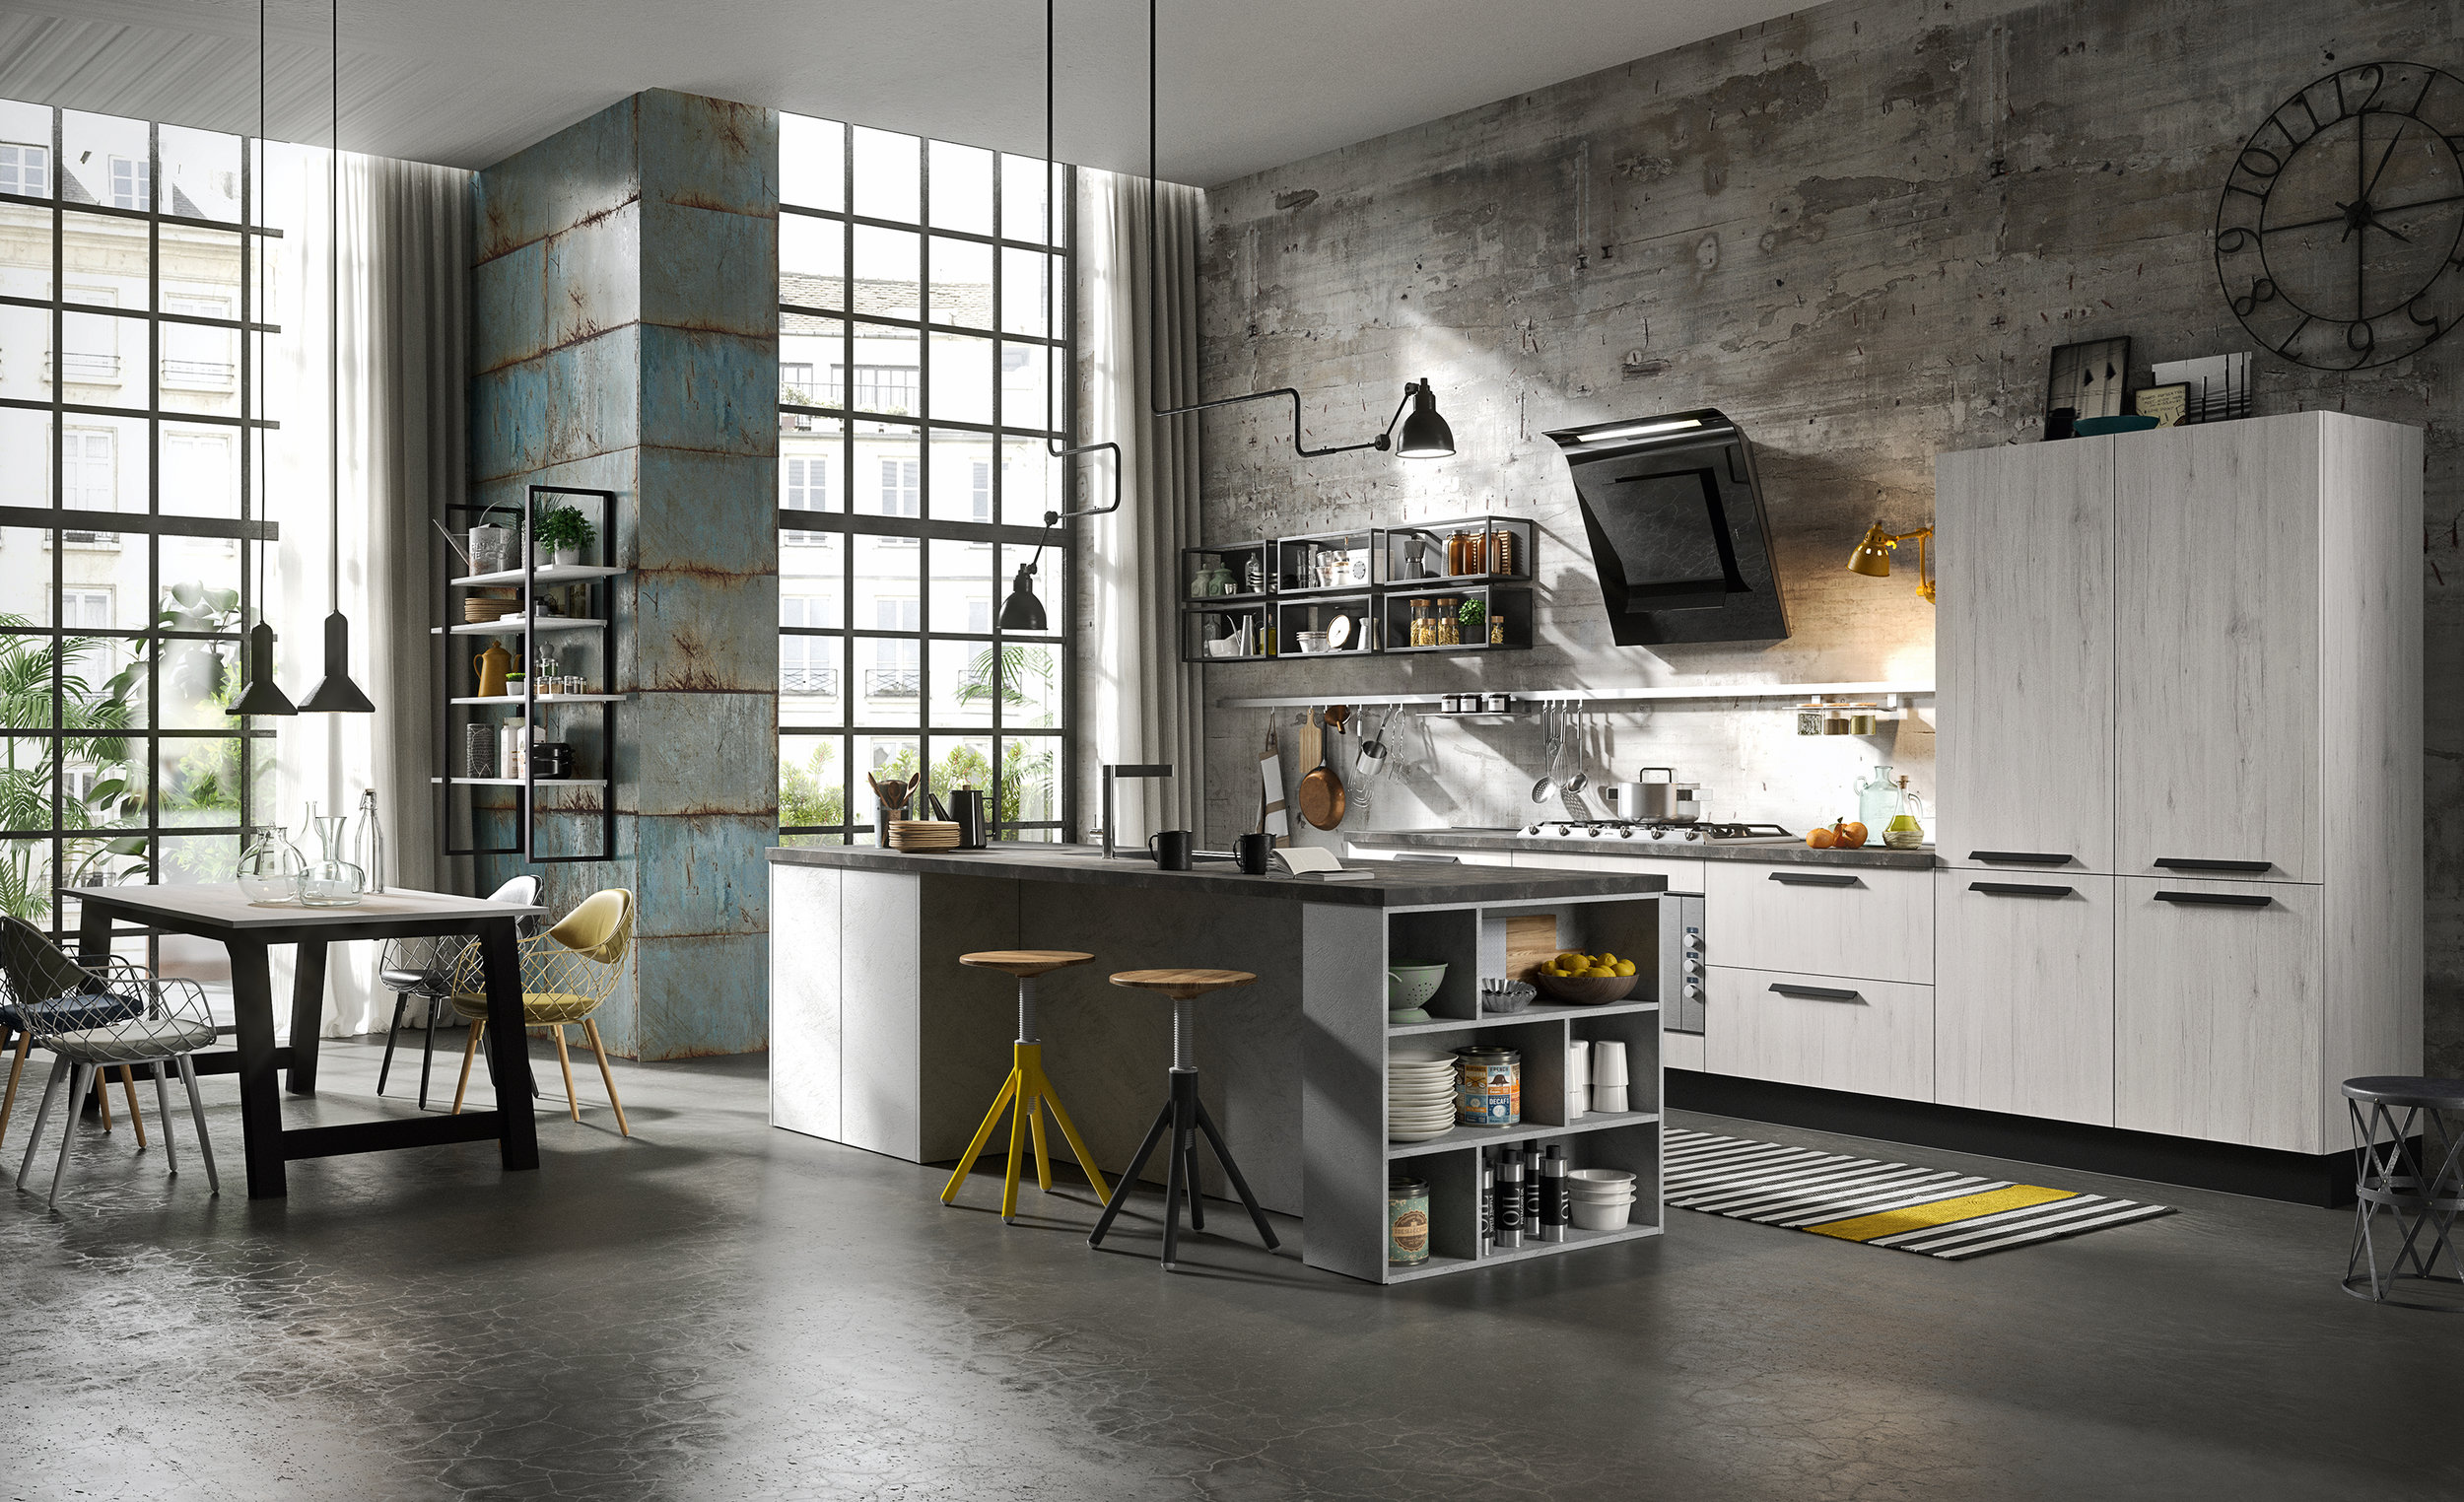 KITCHEN - Our expertise and Italian craftsmanship offers innovative, modern high-end kitchens custom-made in Italy. We are also experts in transitional kitchens, blending the timeless of traditional kitchens with the sleek and contemporary feel of modern kitchens.